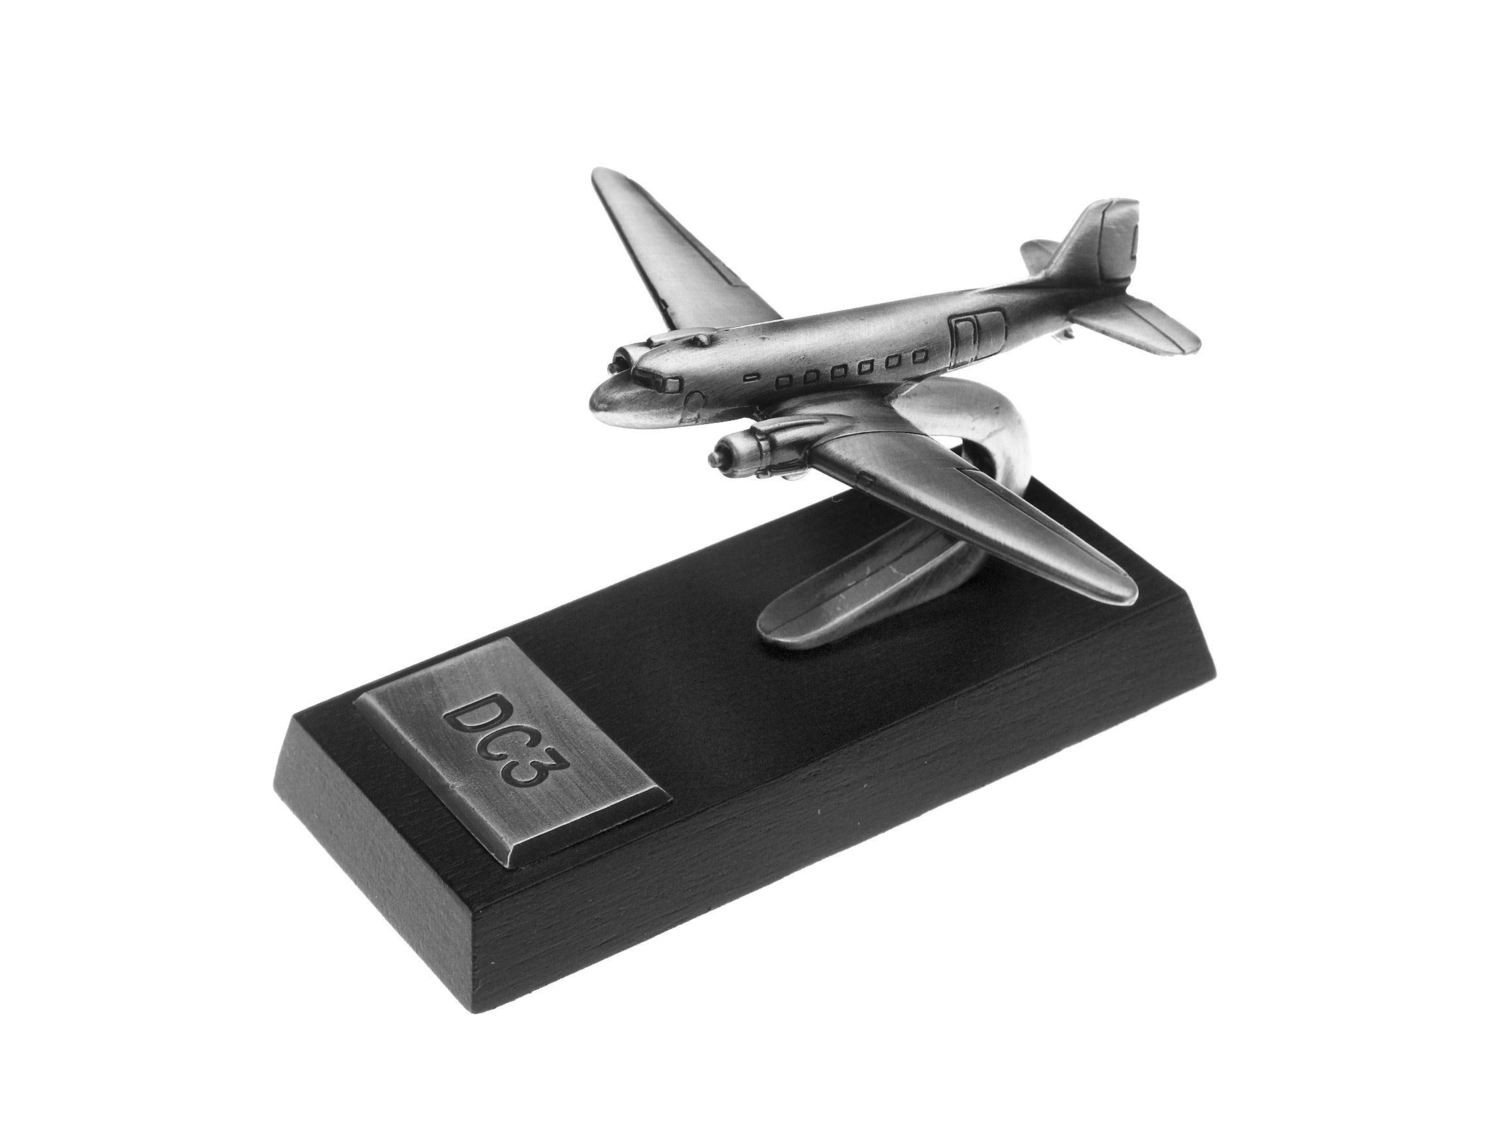 DC3 Dakota Desk Model